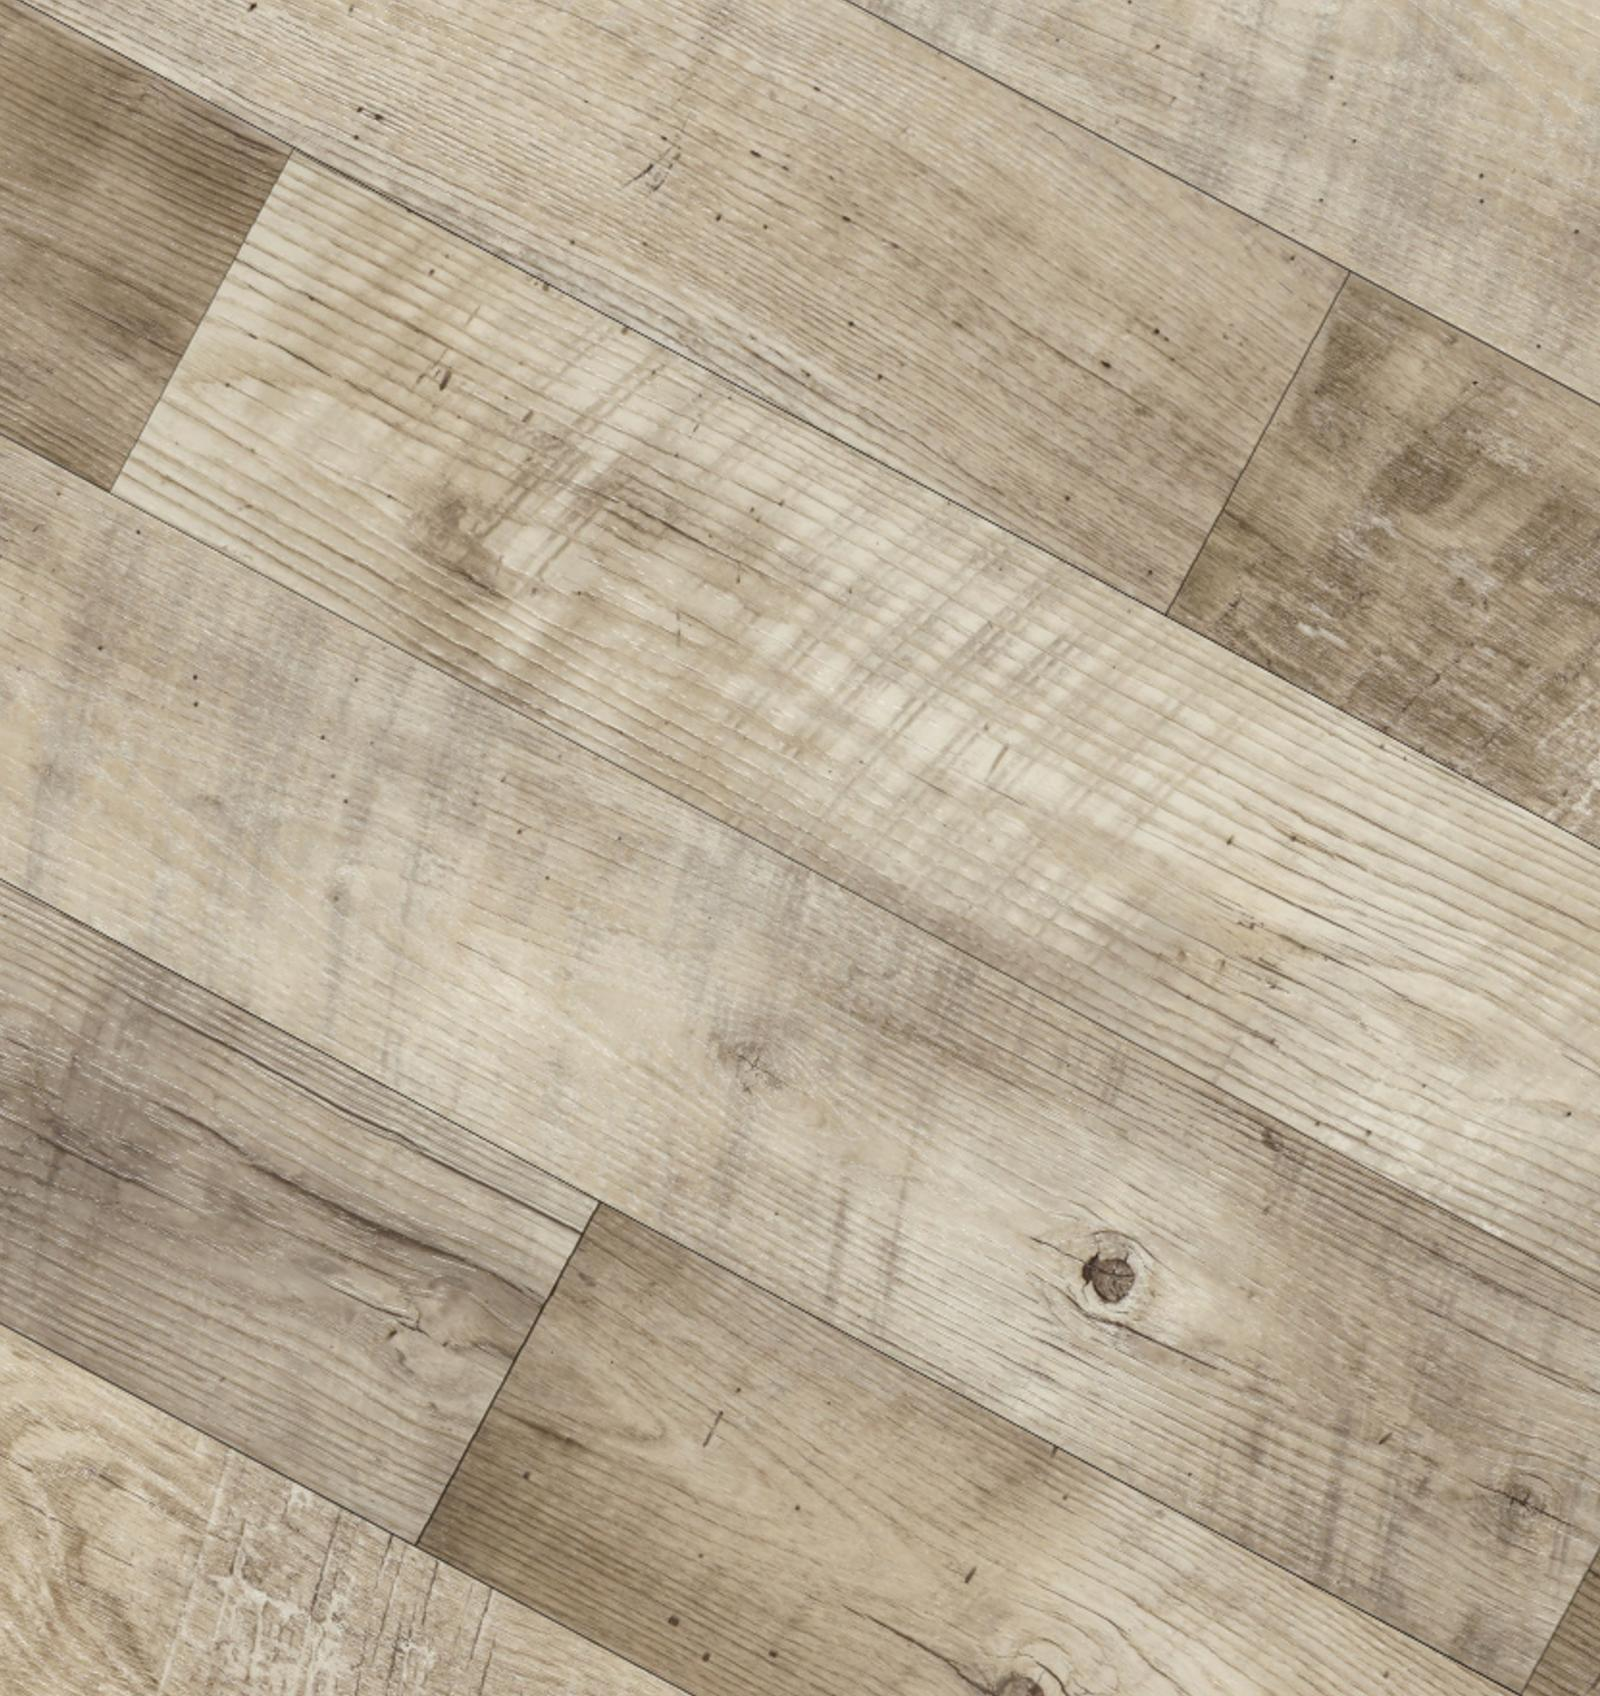 LAMINATE FLOORING FROM $2 49SF BASIC MATERIALS AND LABOR OUR